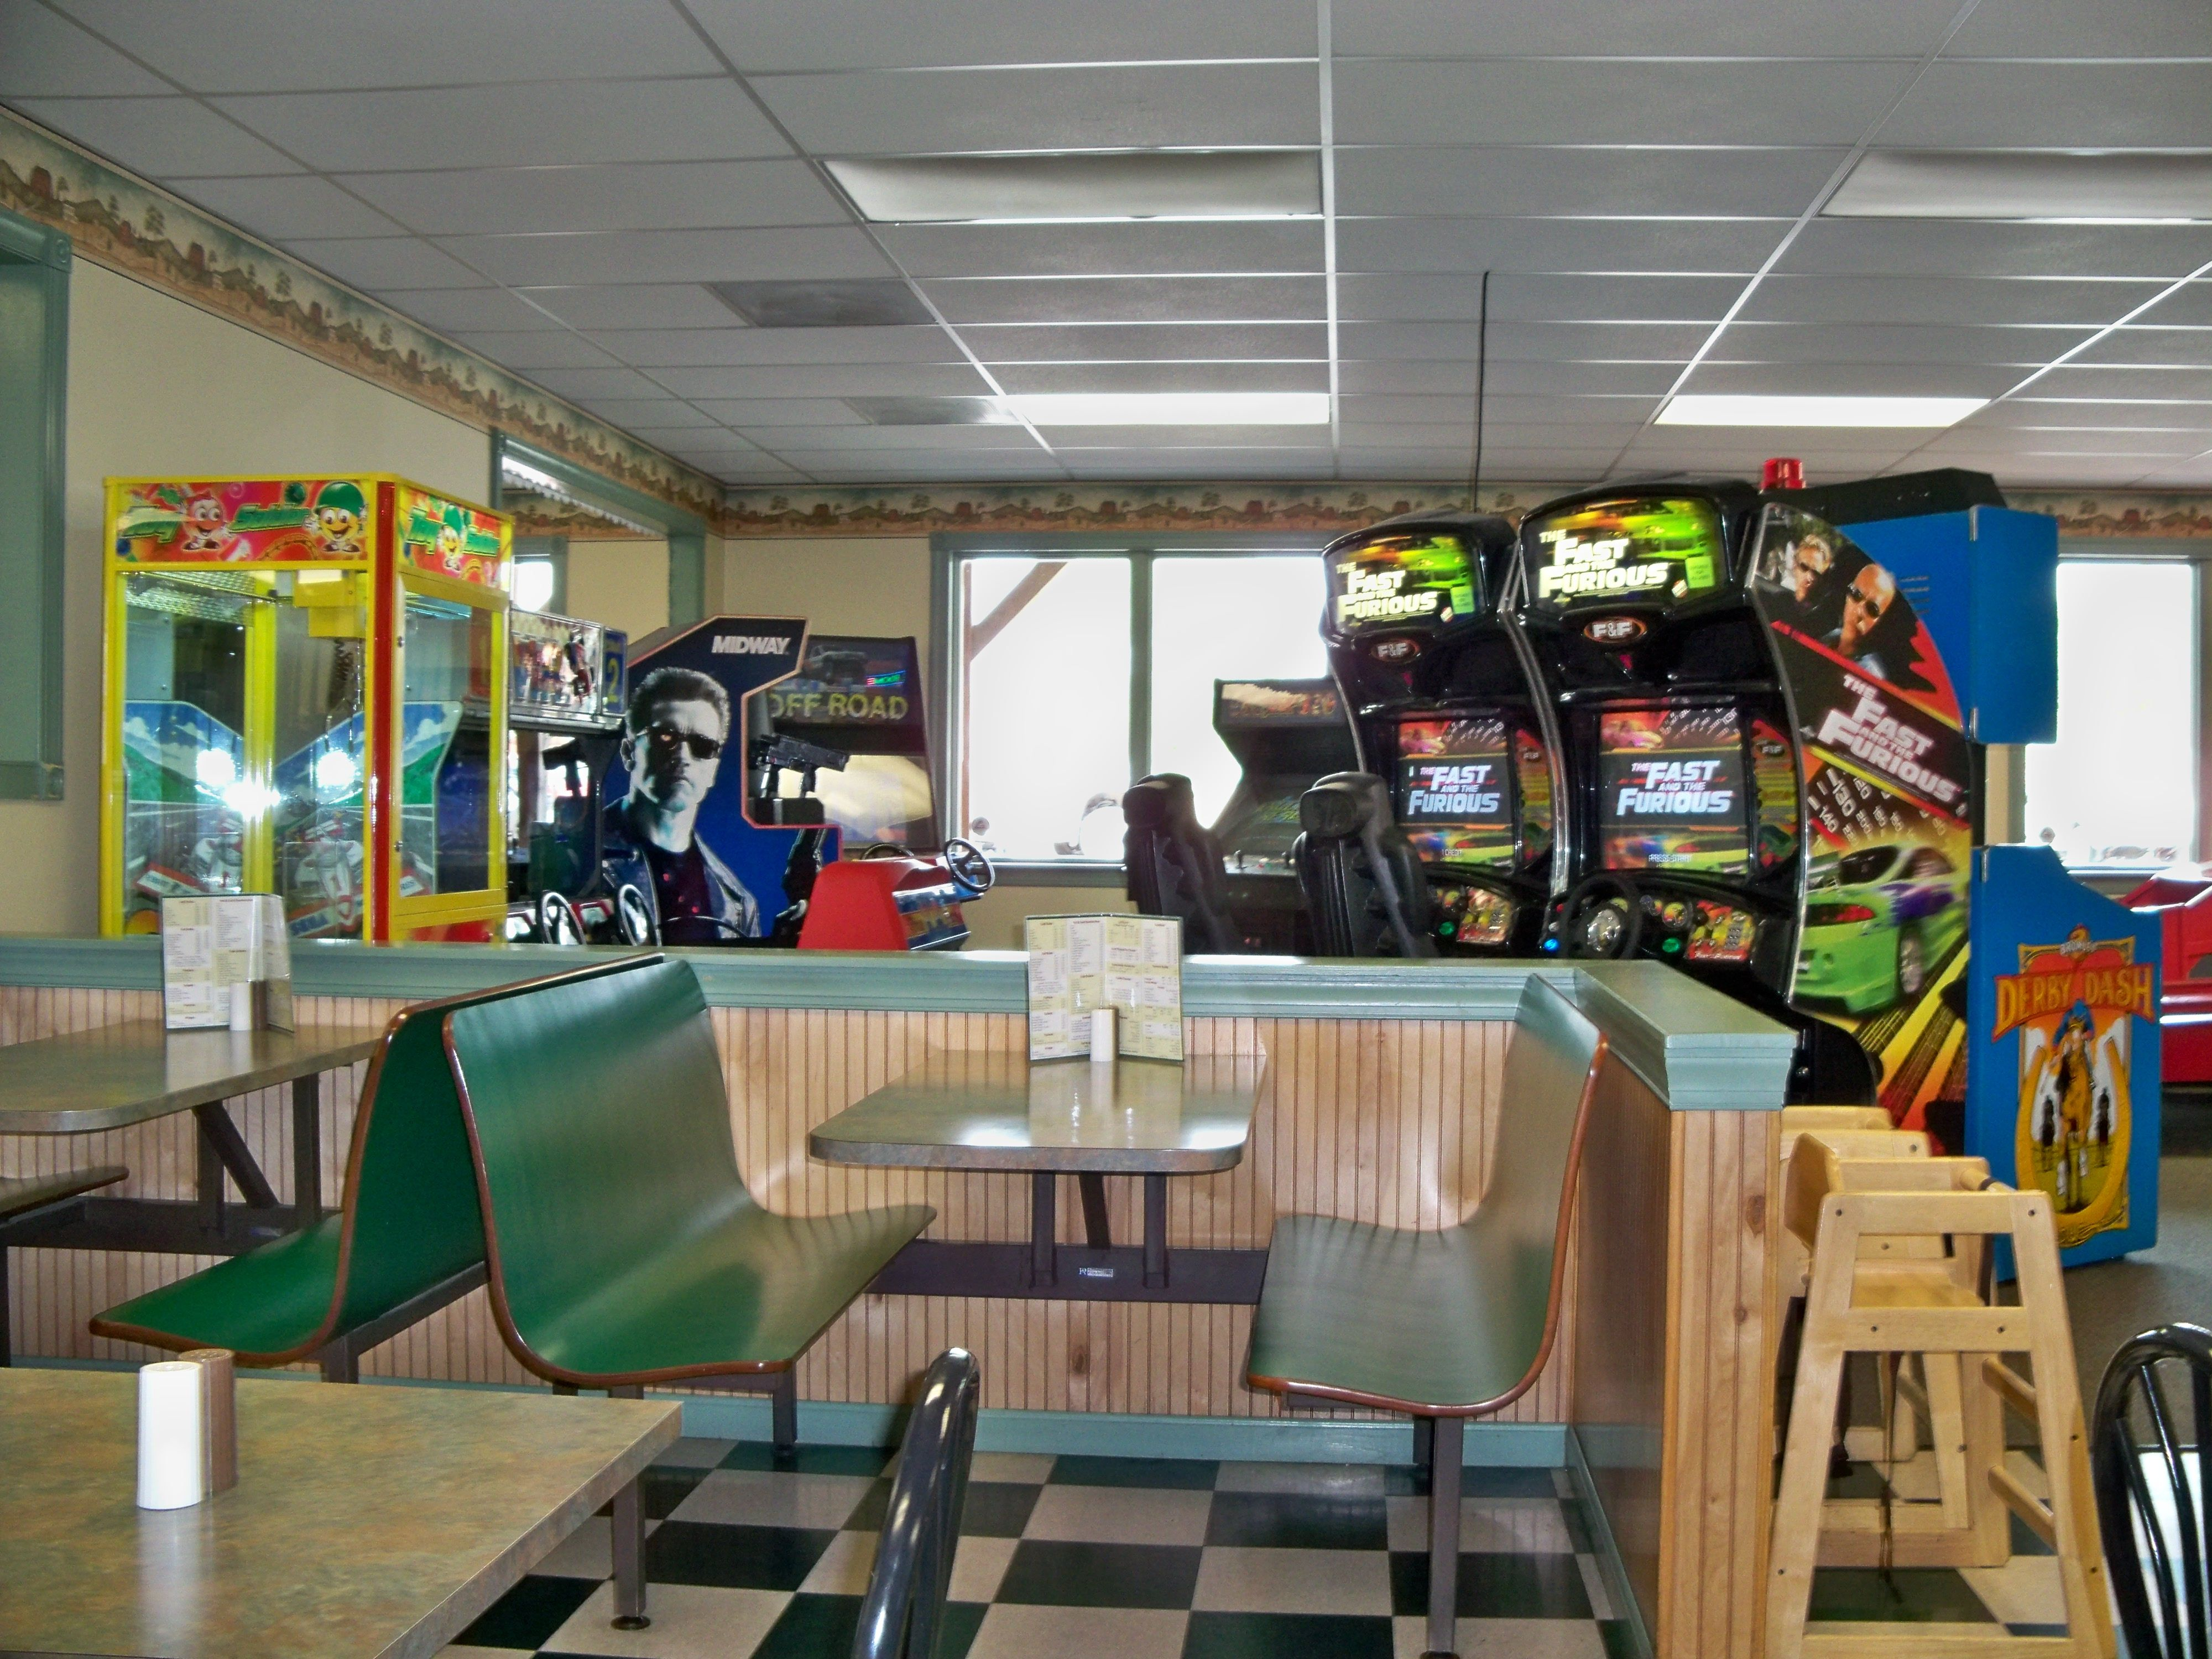 mikie's ice cream & gift shop game room - greencastle, pa